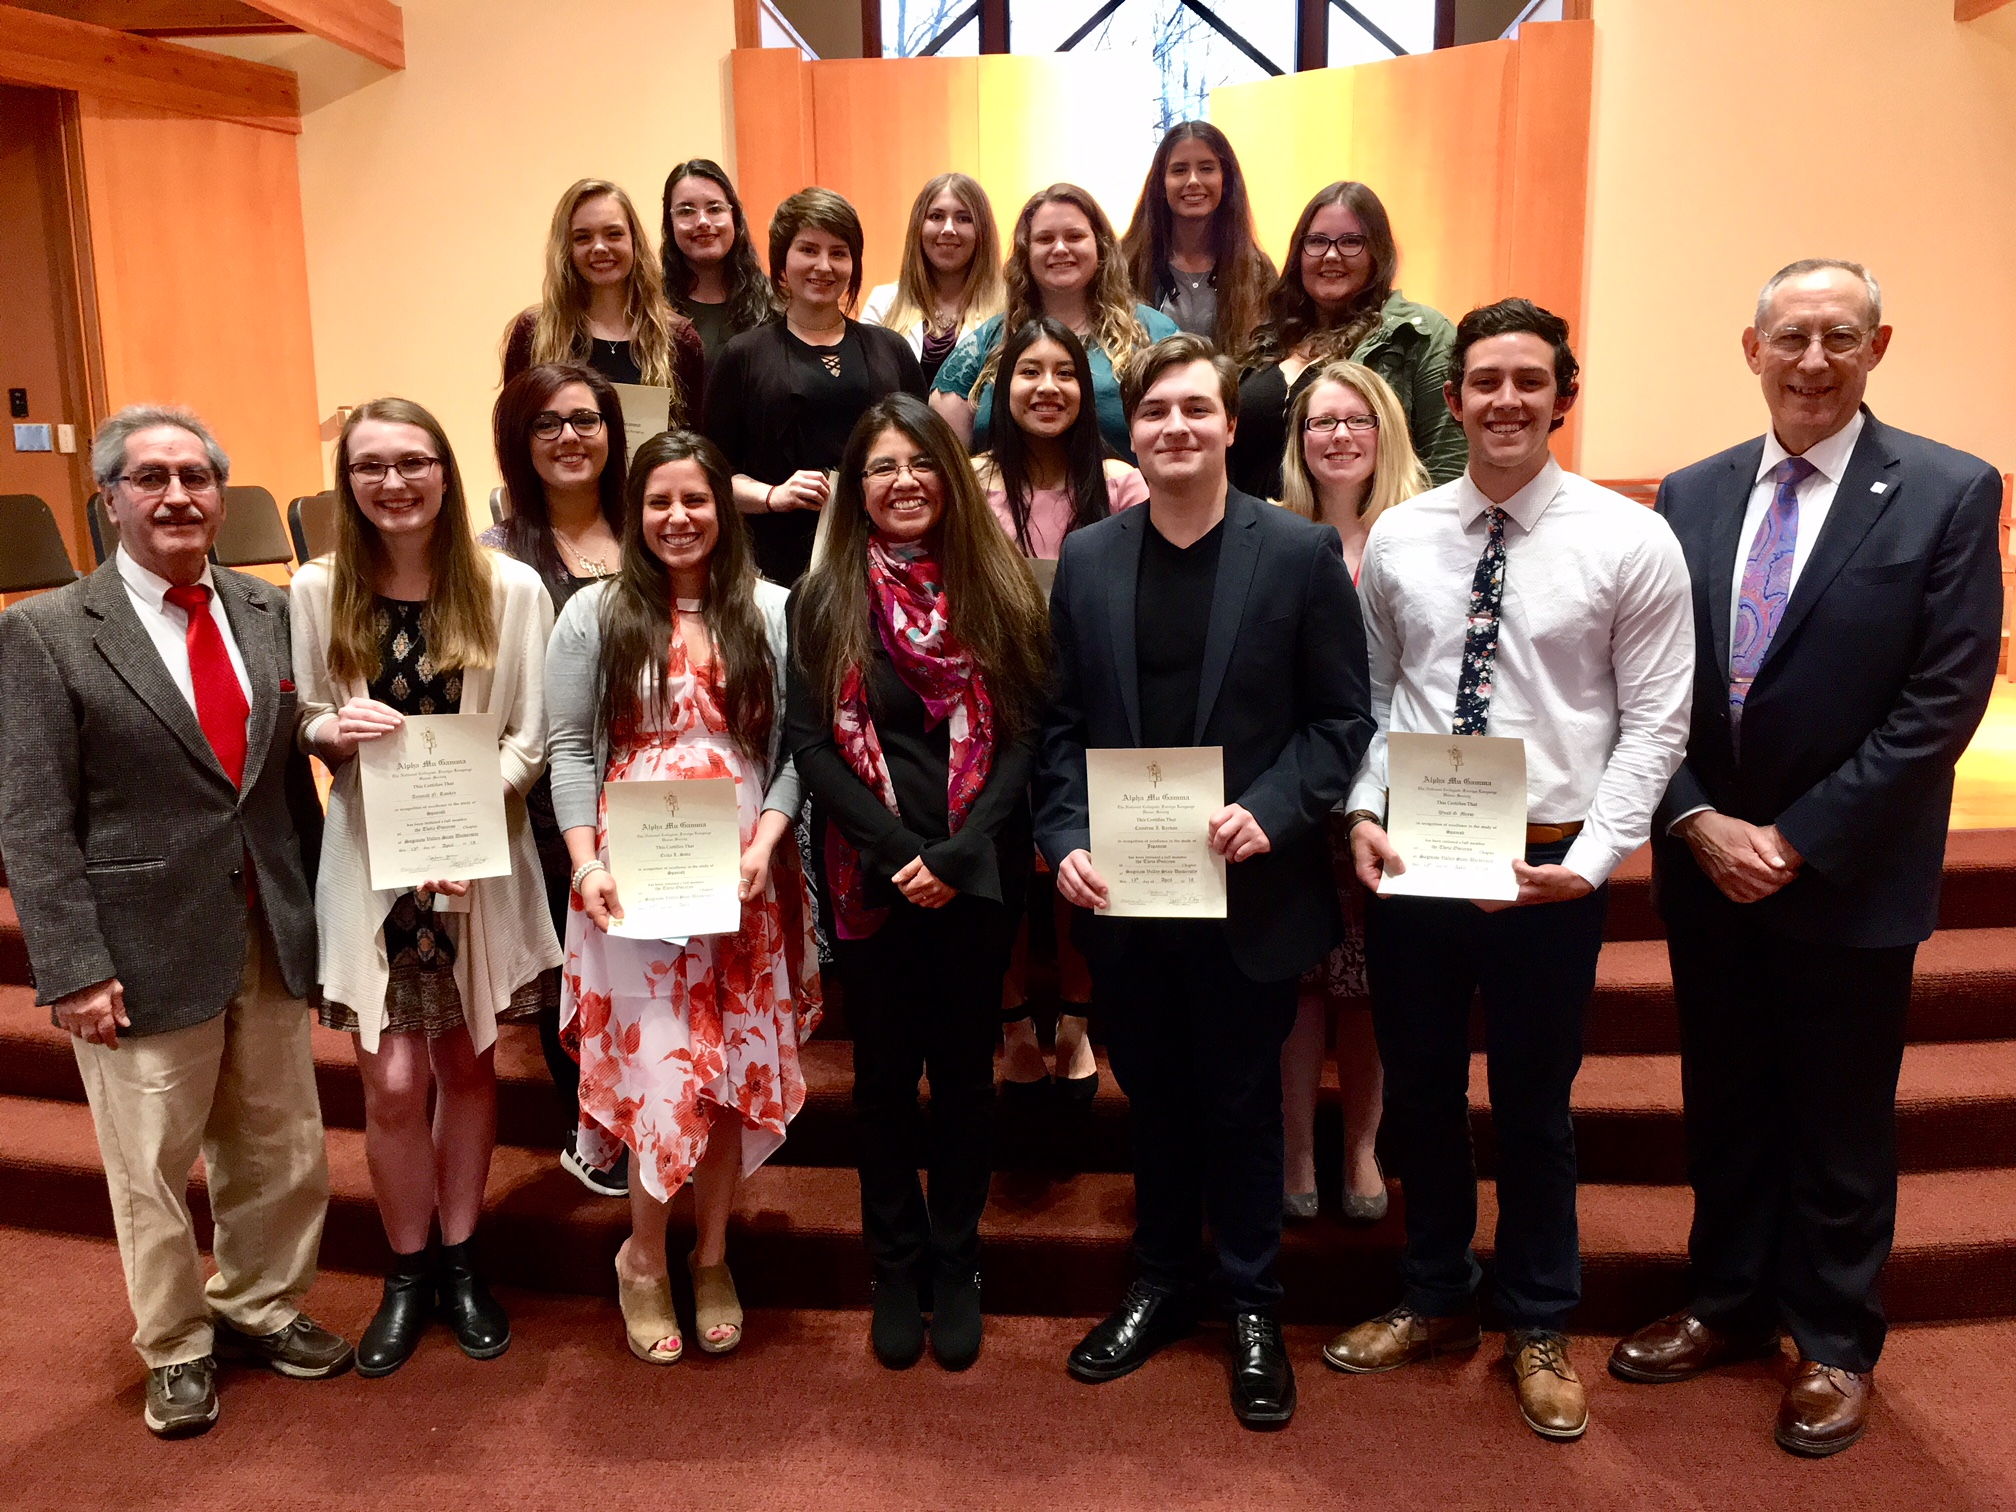 Congratulations to the 11 students initiated last Friday into Alpha Mu Gamma-Theta Omicron, SVSU's chapter of a national collegiate foreign language honor society.